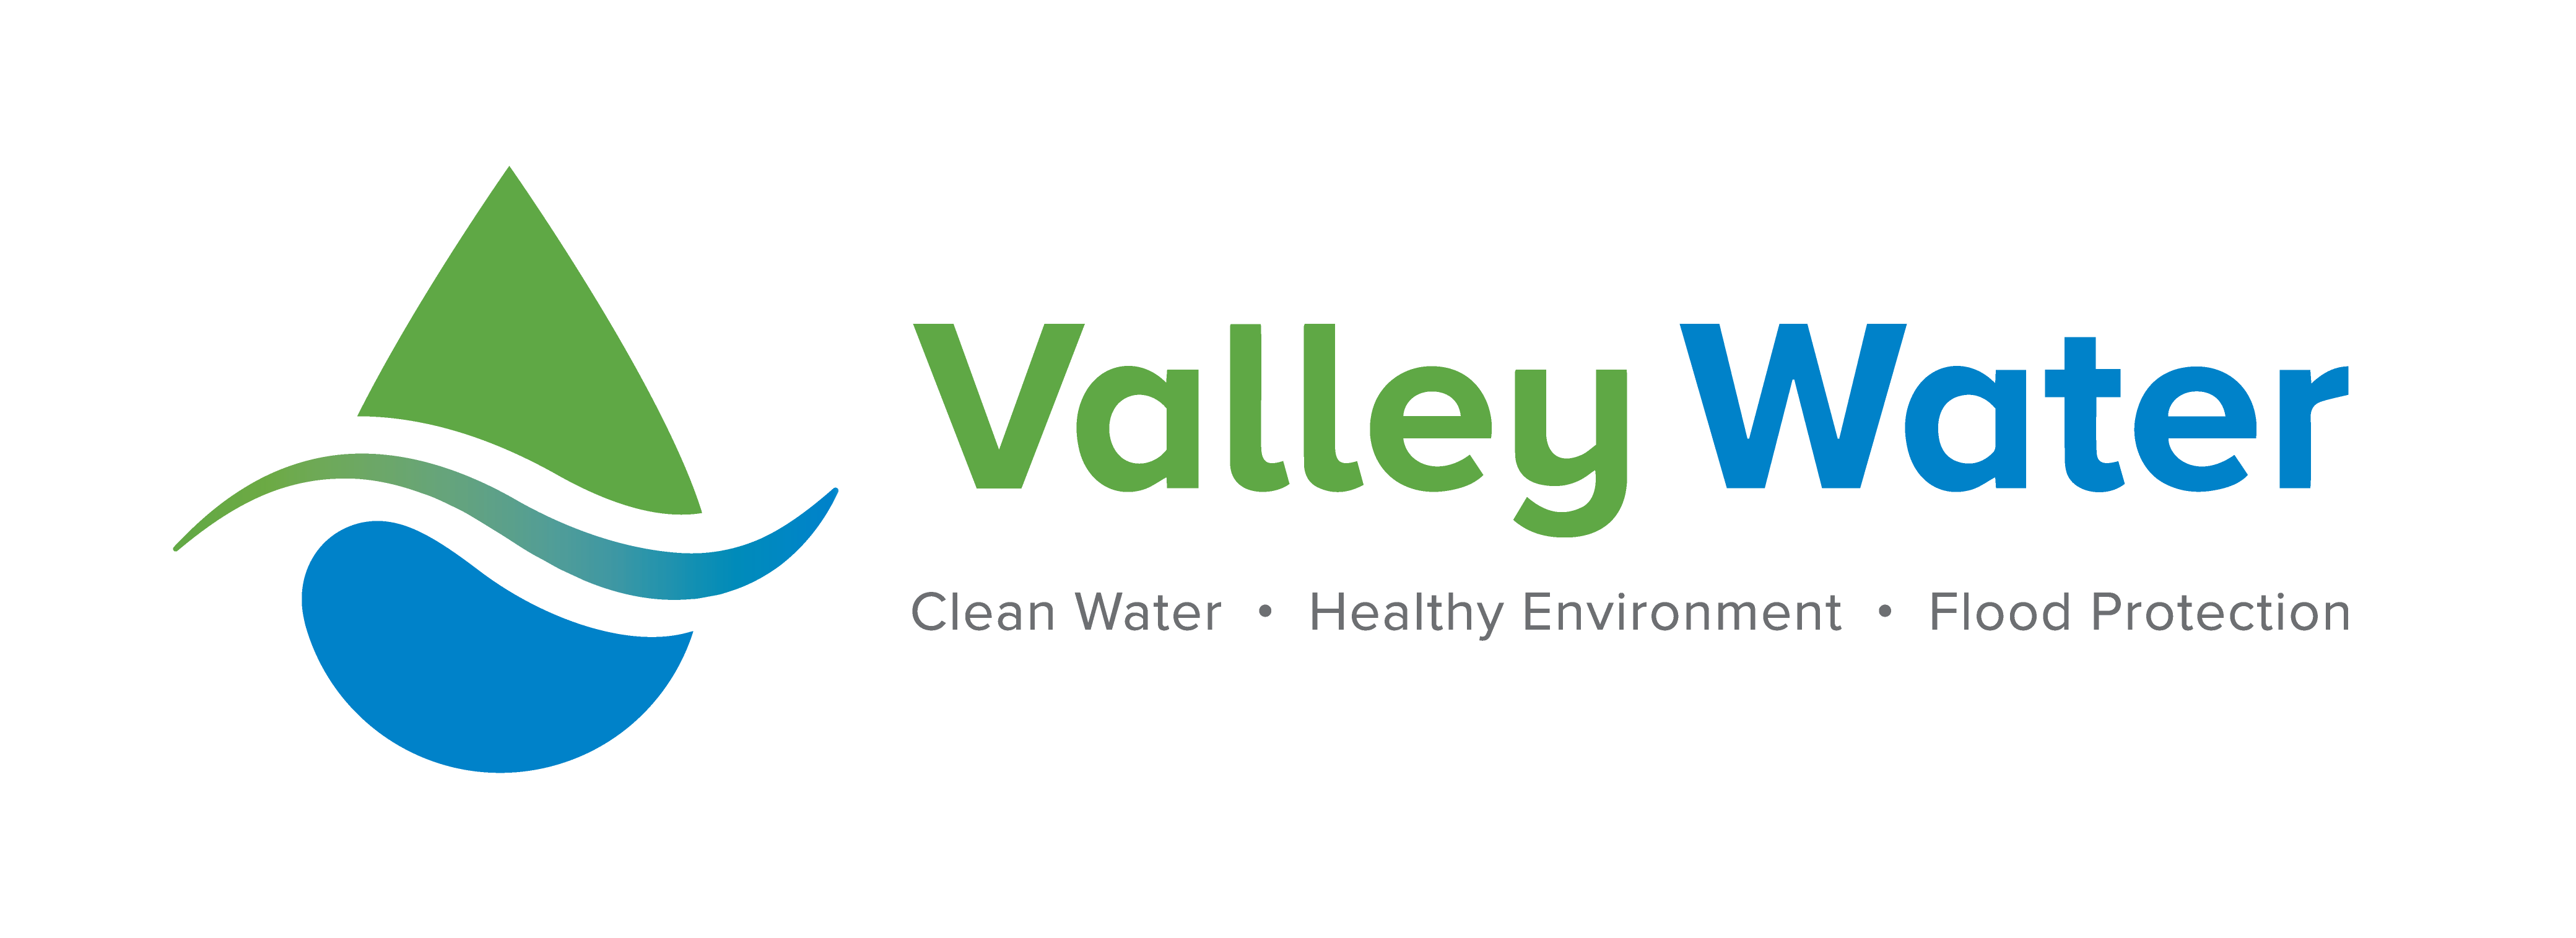 valley water logo with tagline